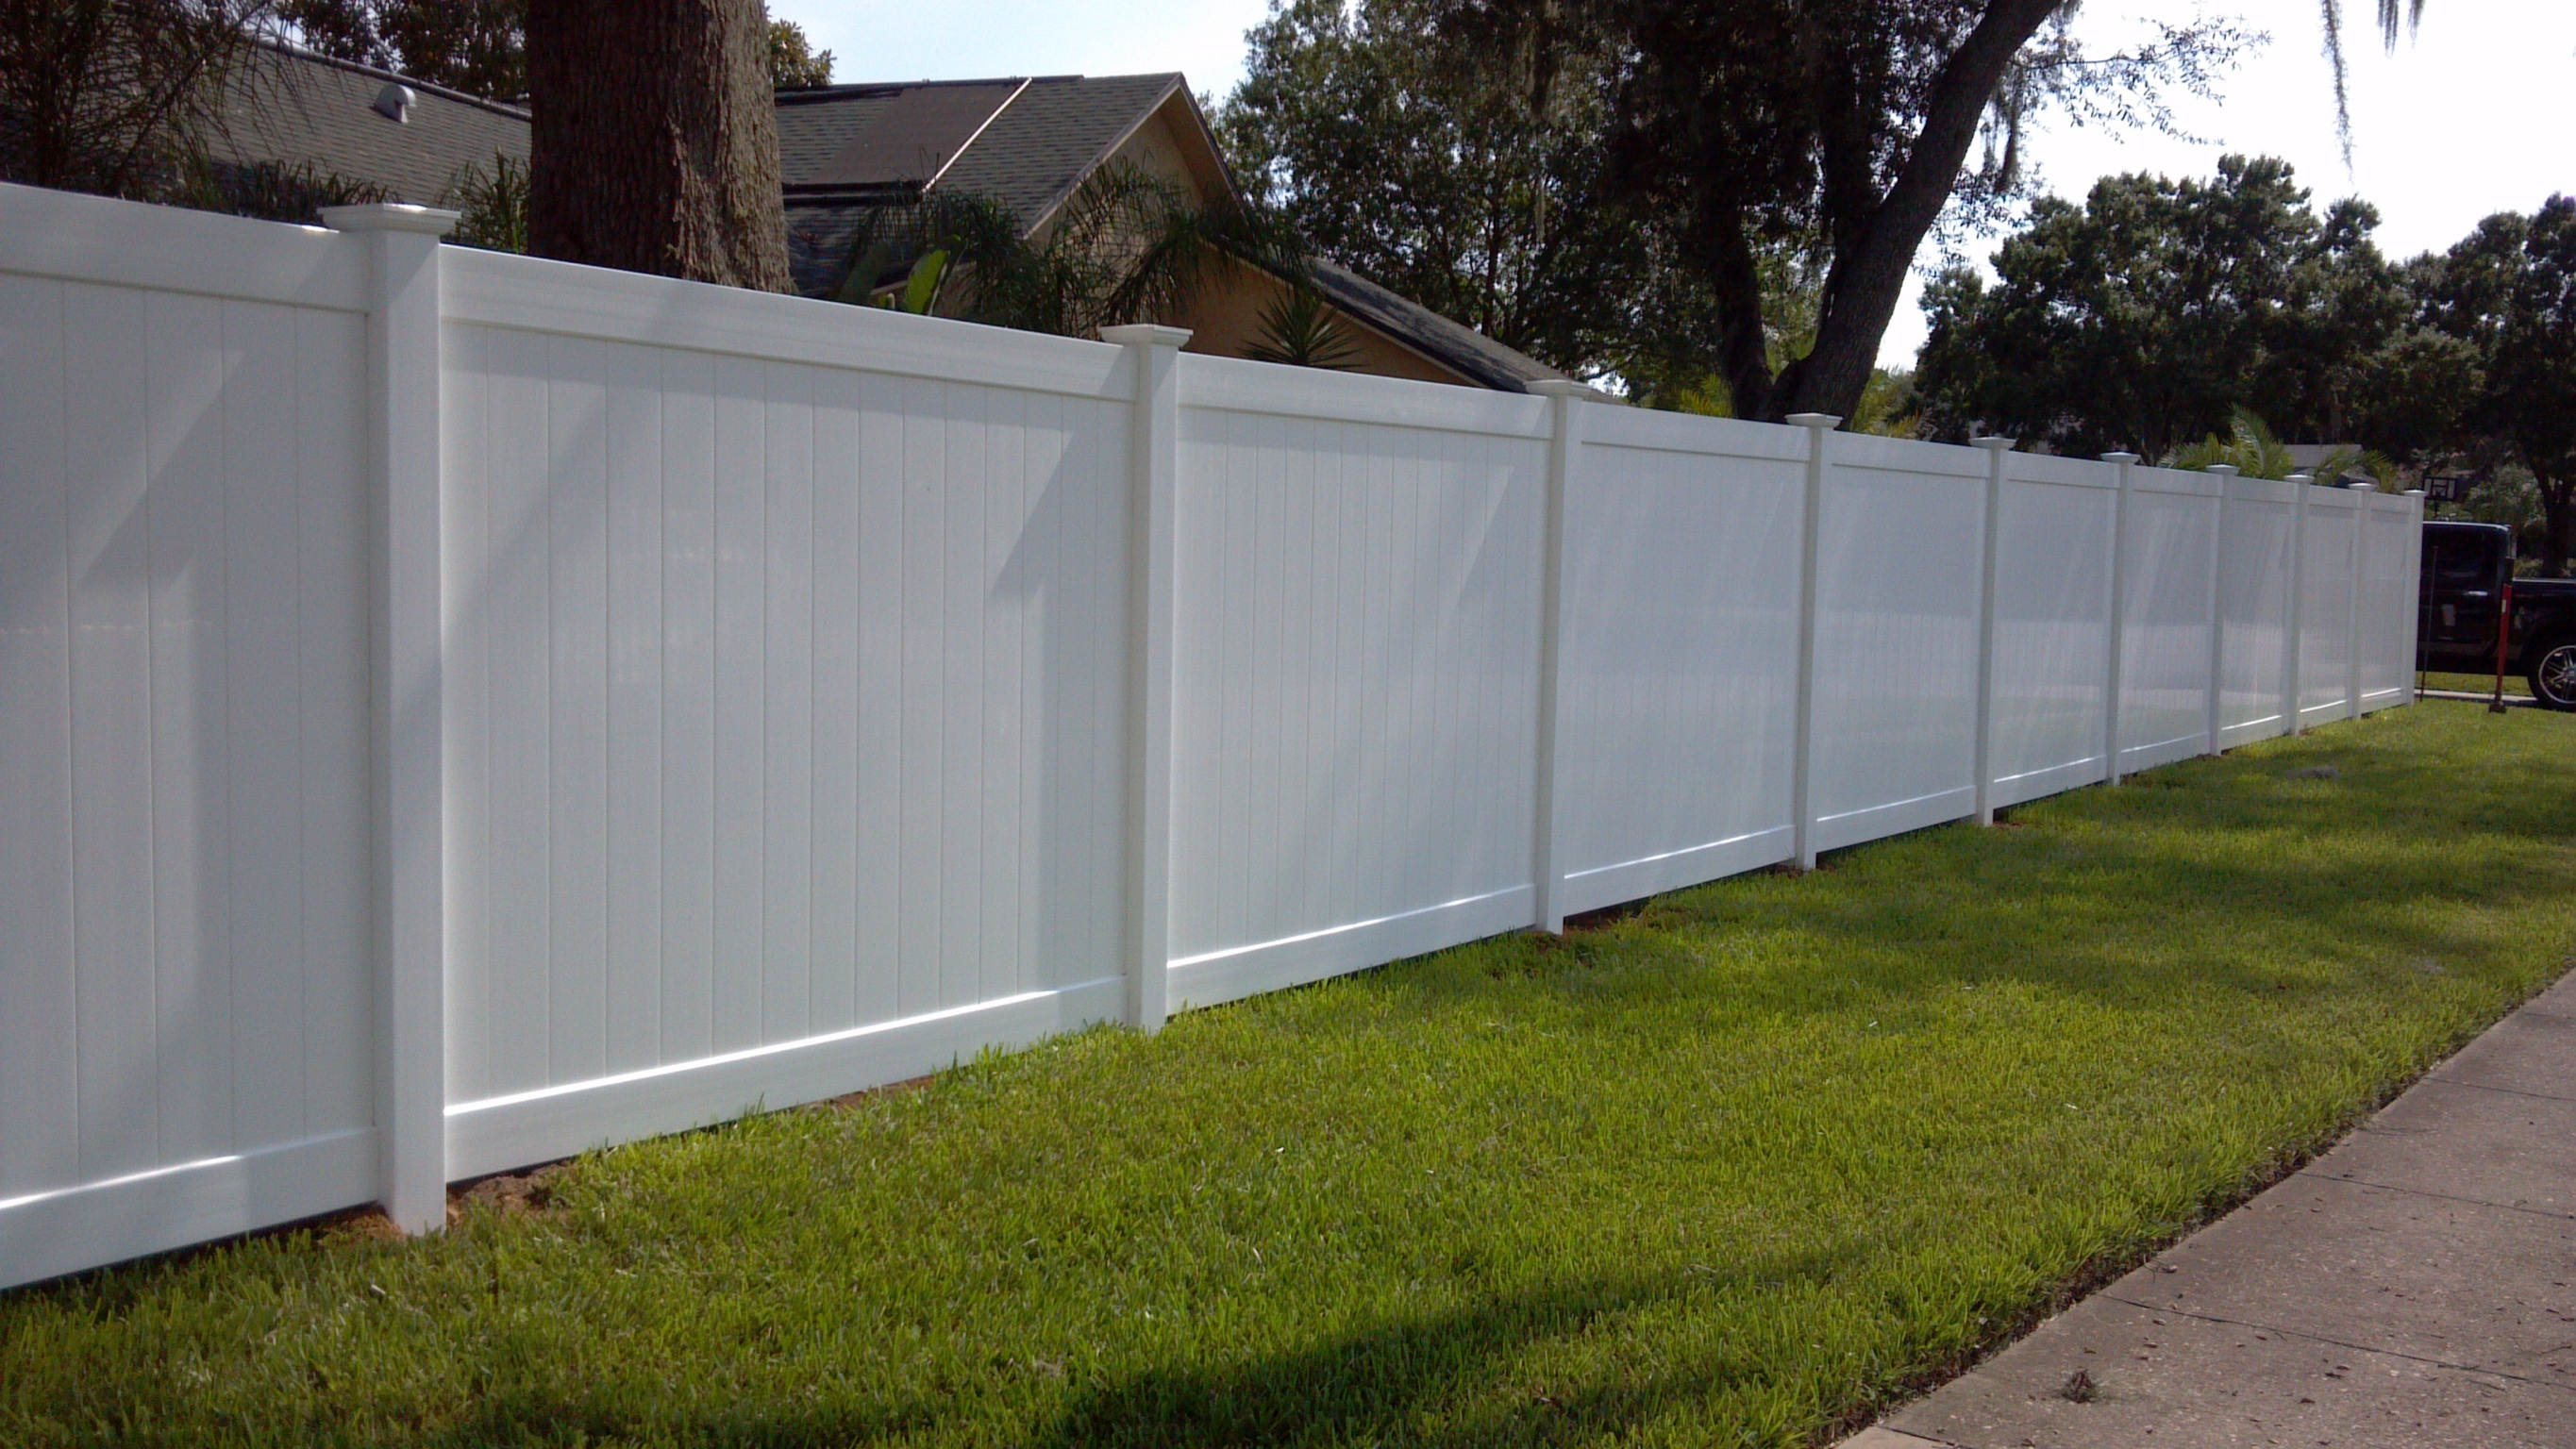 Were Not On The Fence About Vinyl Fencing Liberty Fence And Deck regarding Backyard Fence Company